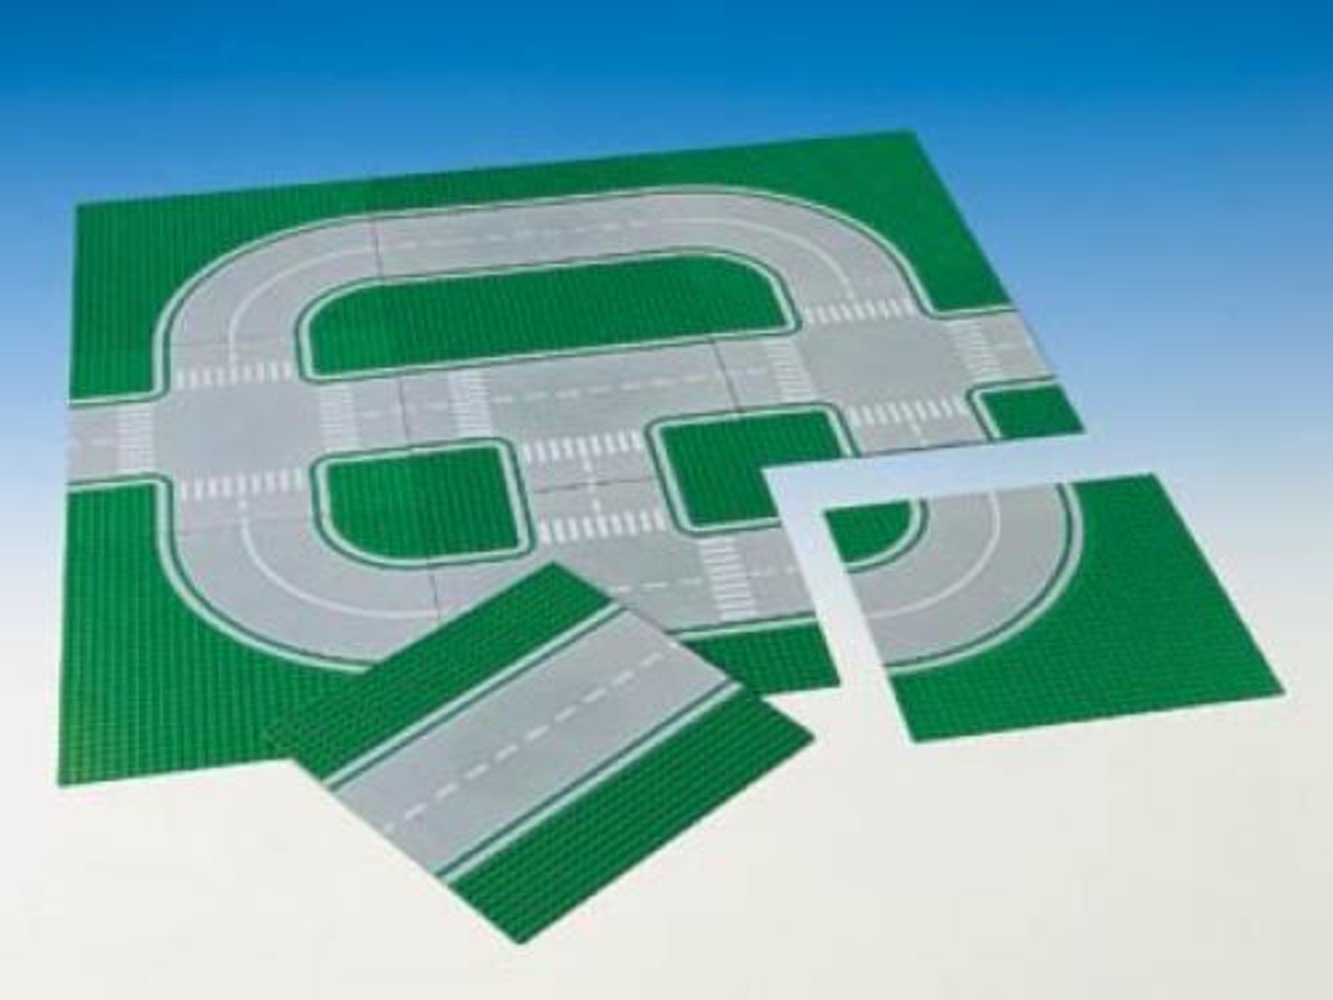 Lego System Road Plates